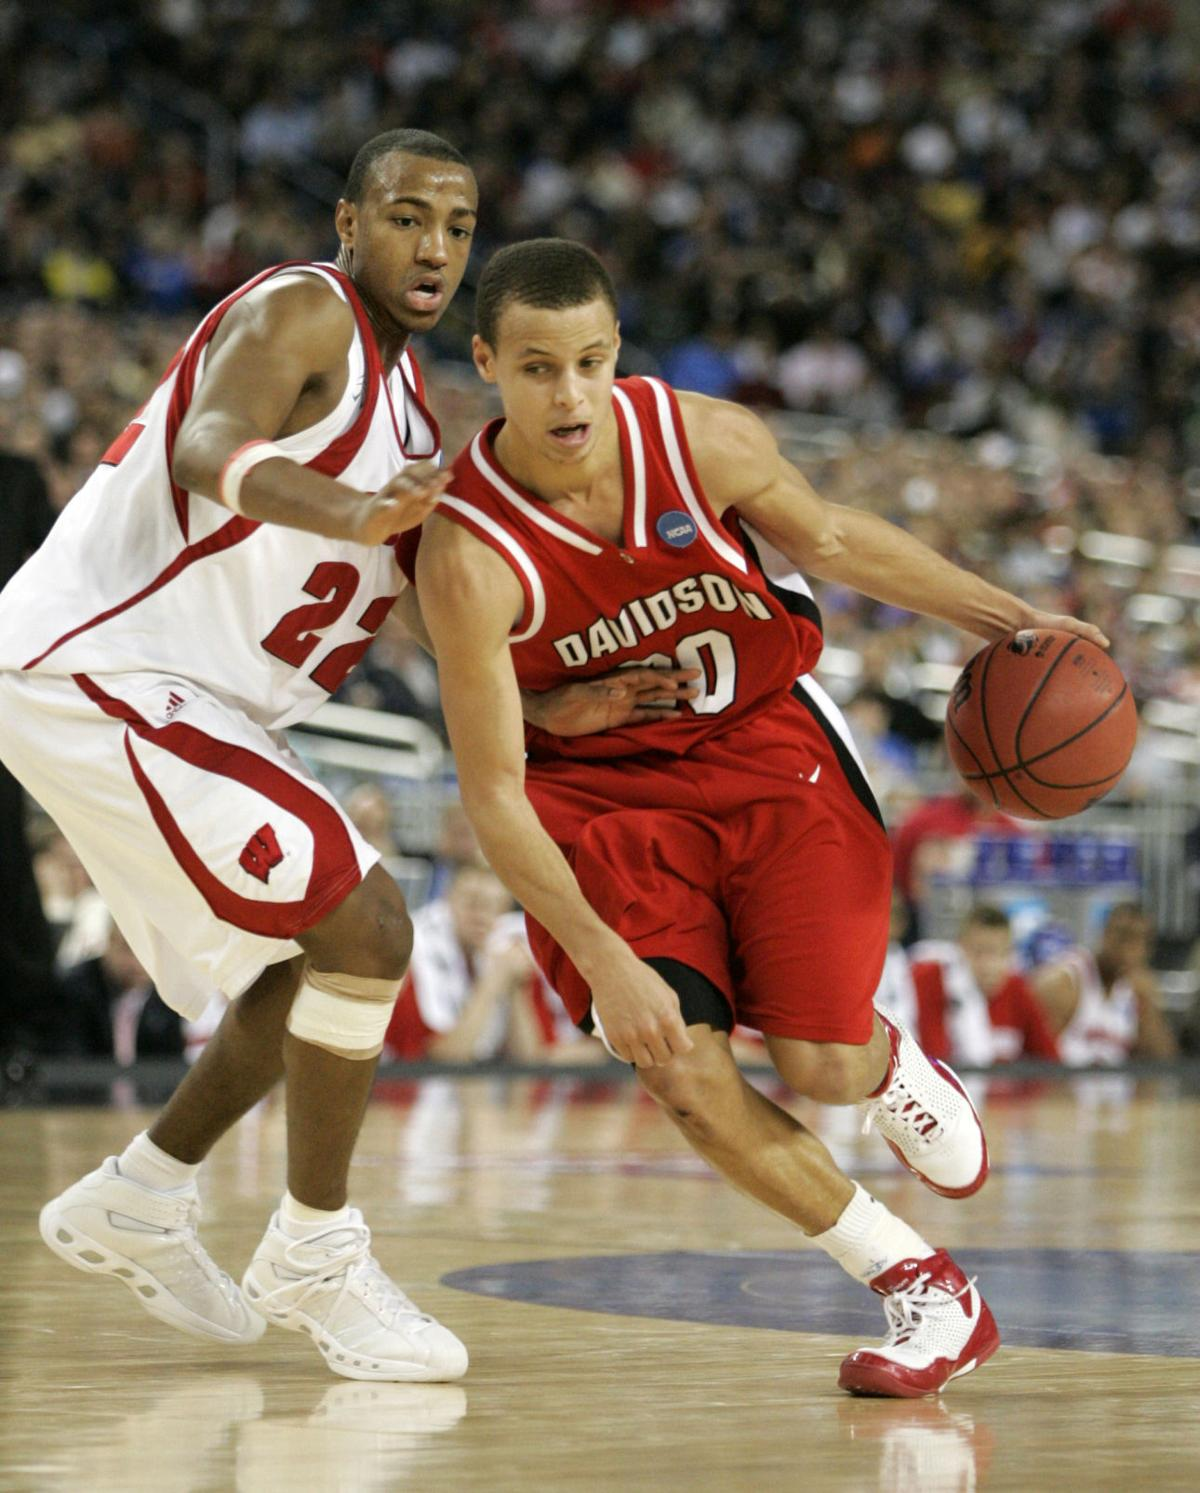 2008: Steph Curry, Davidson take down Badgers in Sweet 16     host.madison.com